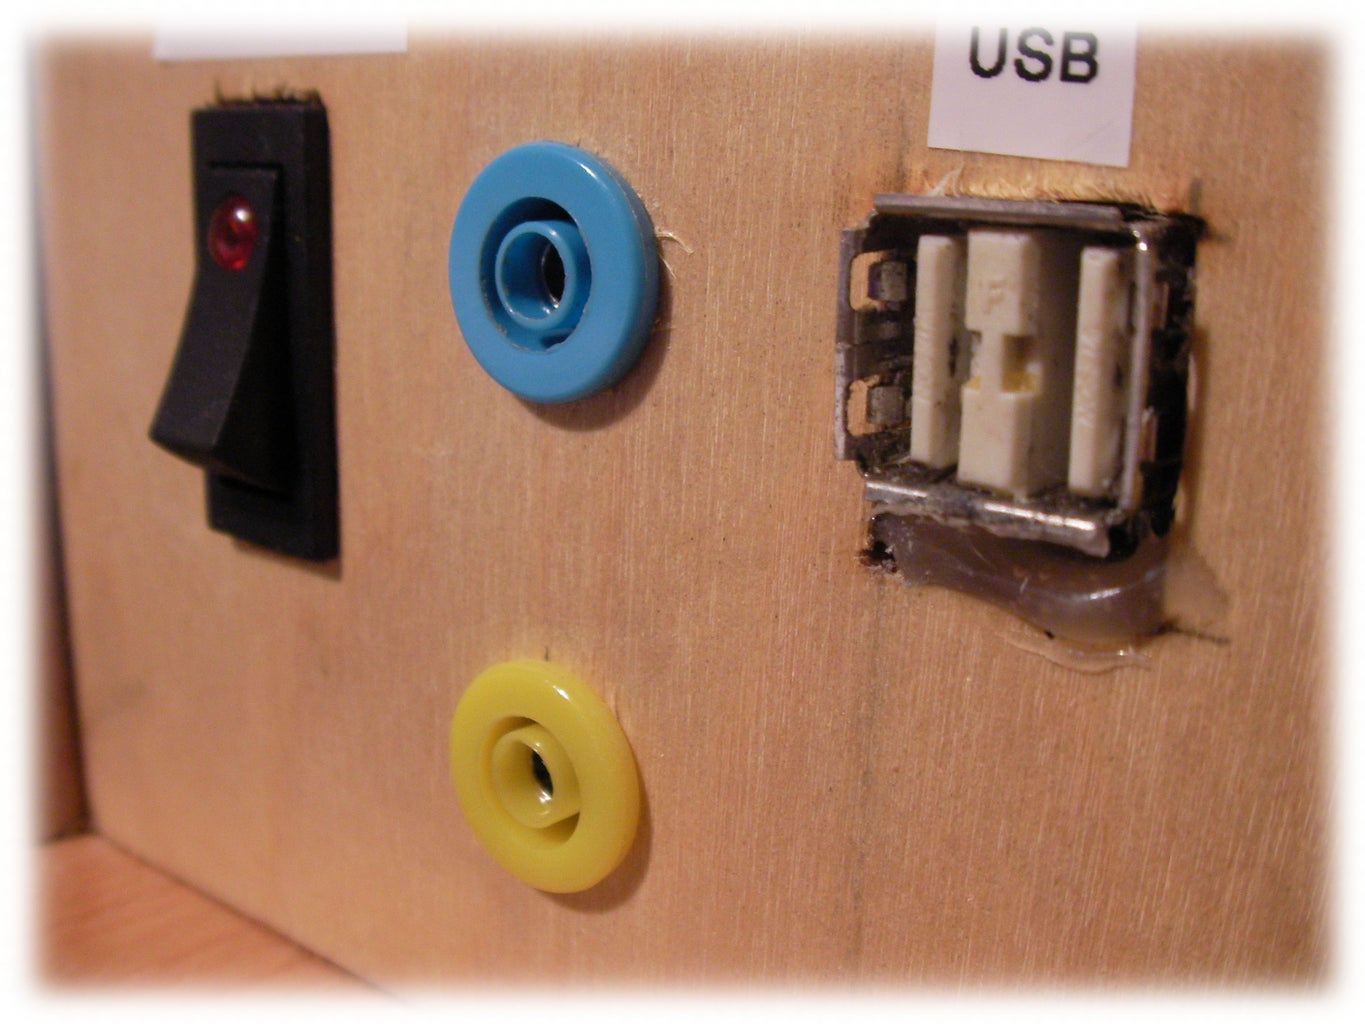 The Continuity Tester